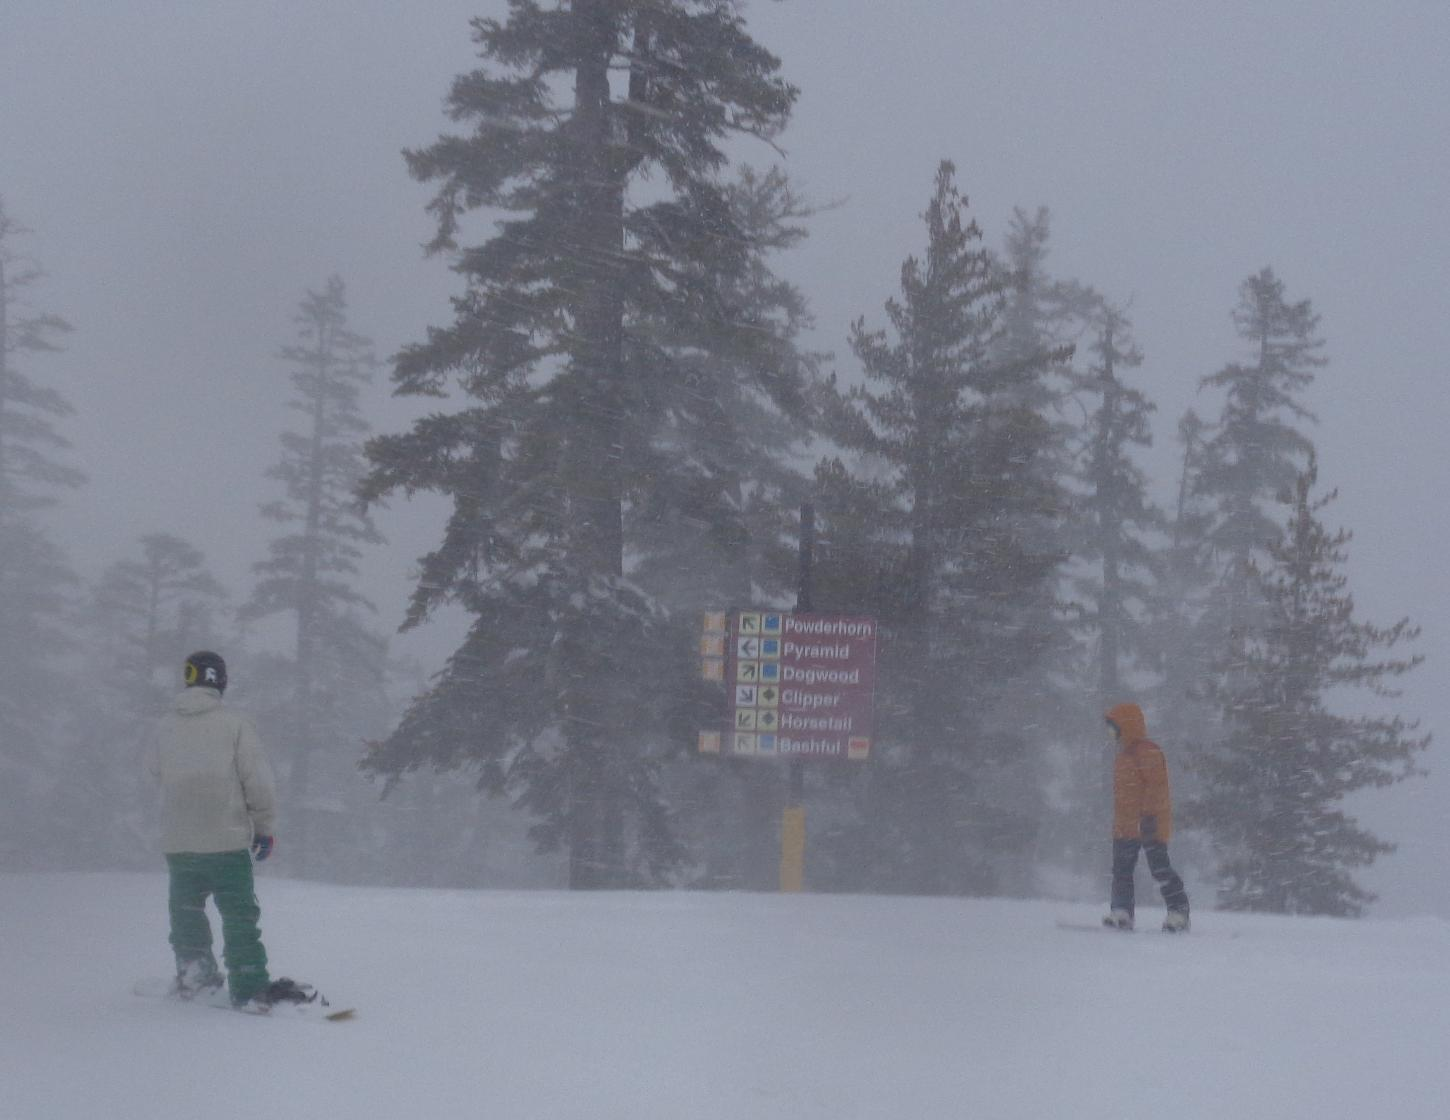 West Bowl in Snow